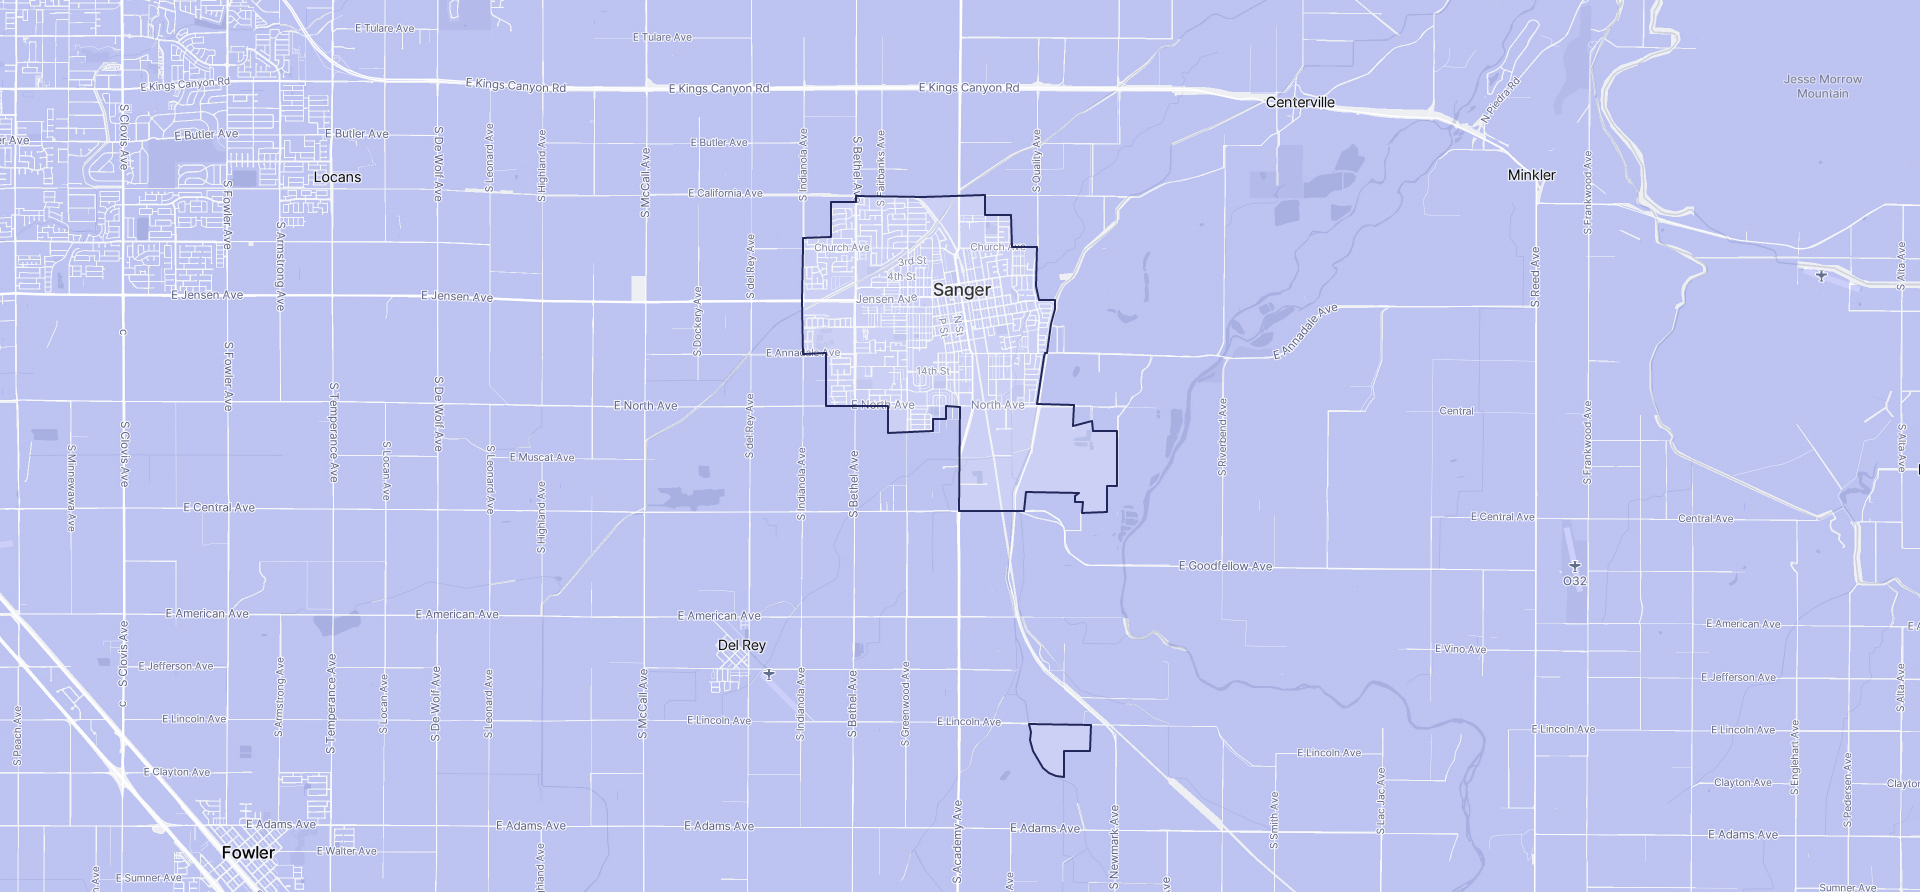 Image of Sanger boundaries on a map.